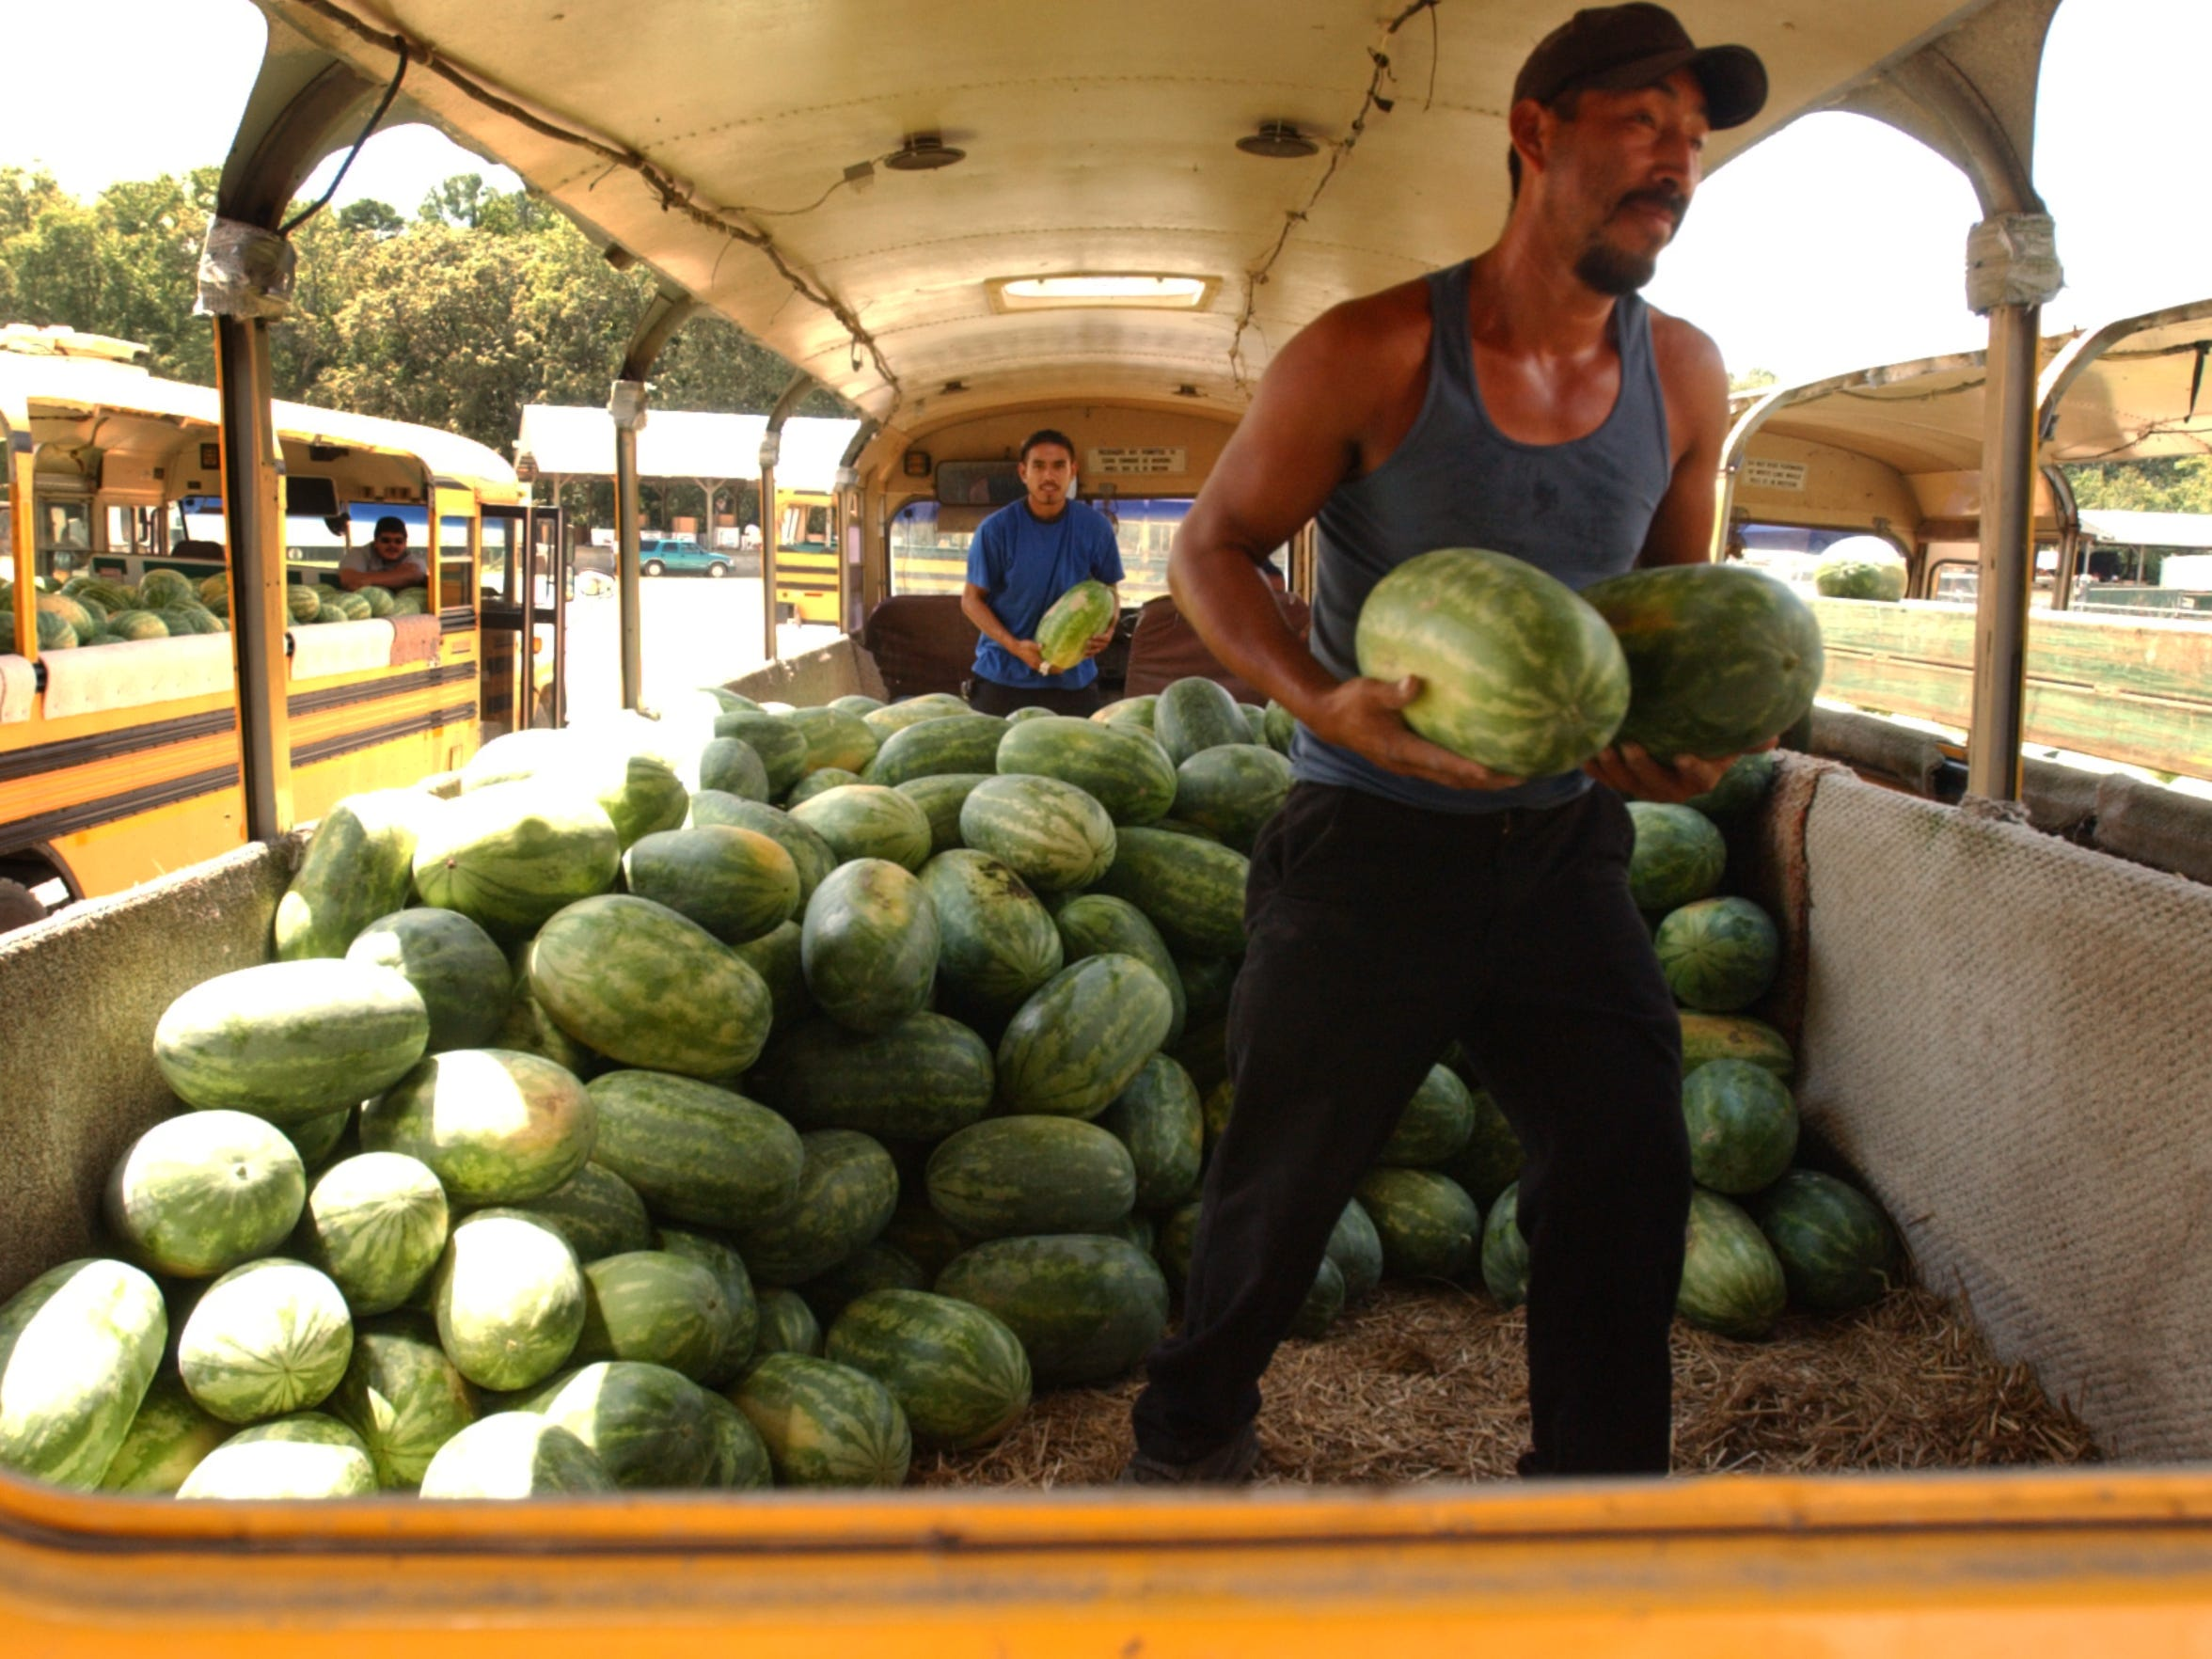 Workers unload a bus at the Laurel Farmers Auction Market in August 2008.